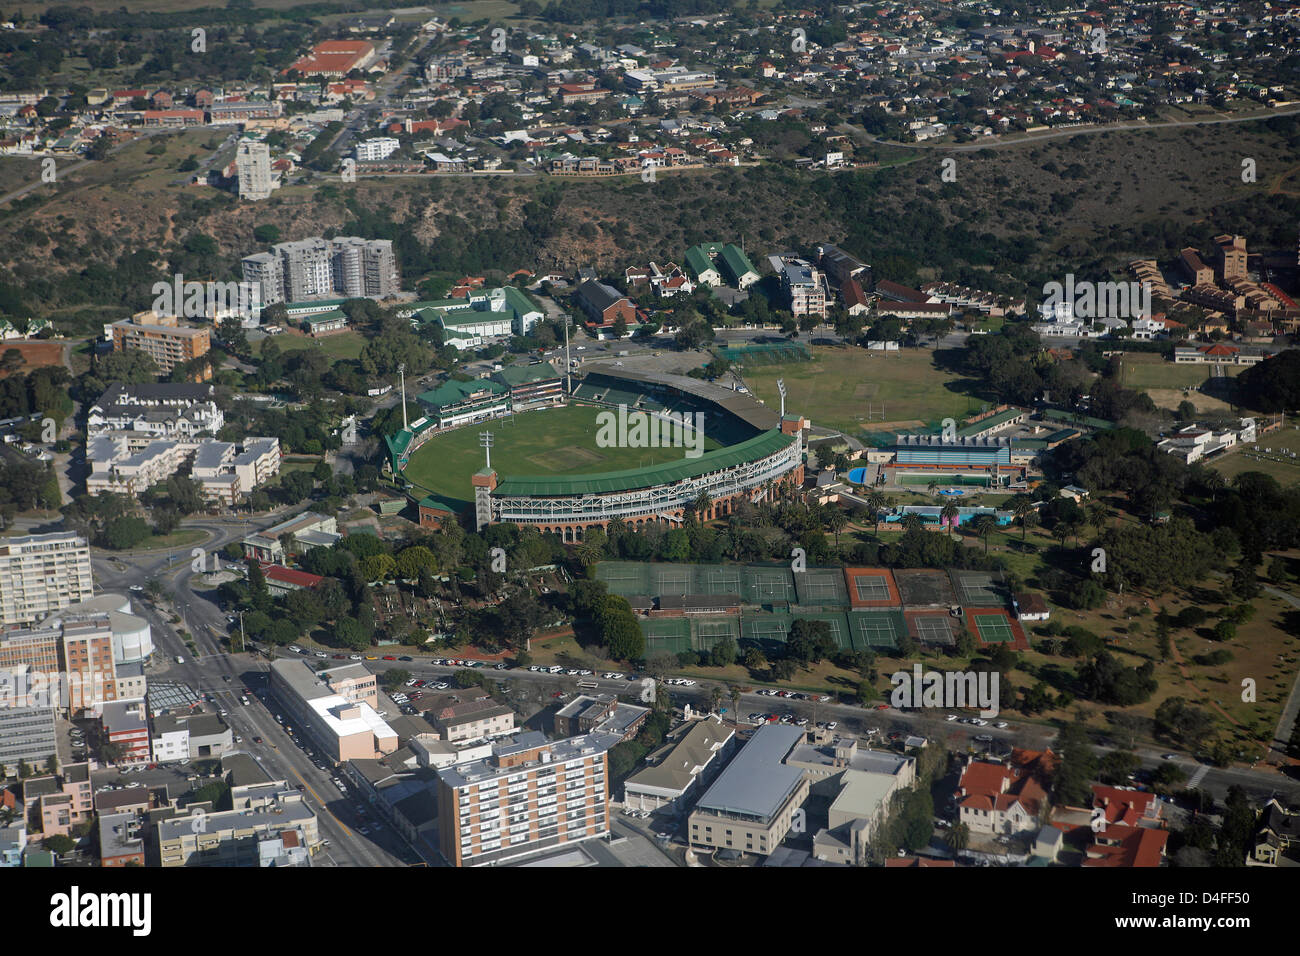 Aerial View Of St George S Park Cricket Ground Port Elizabeth Stock Photo Royalty Free Image